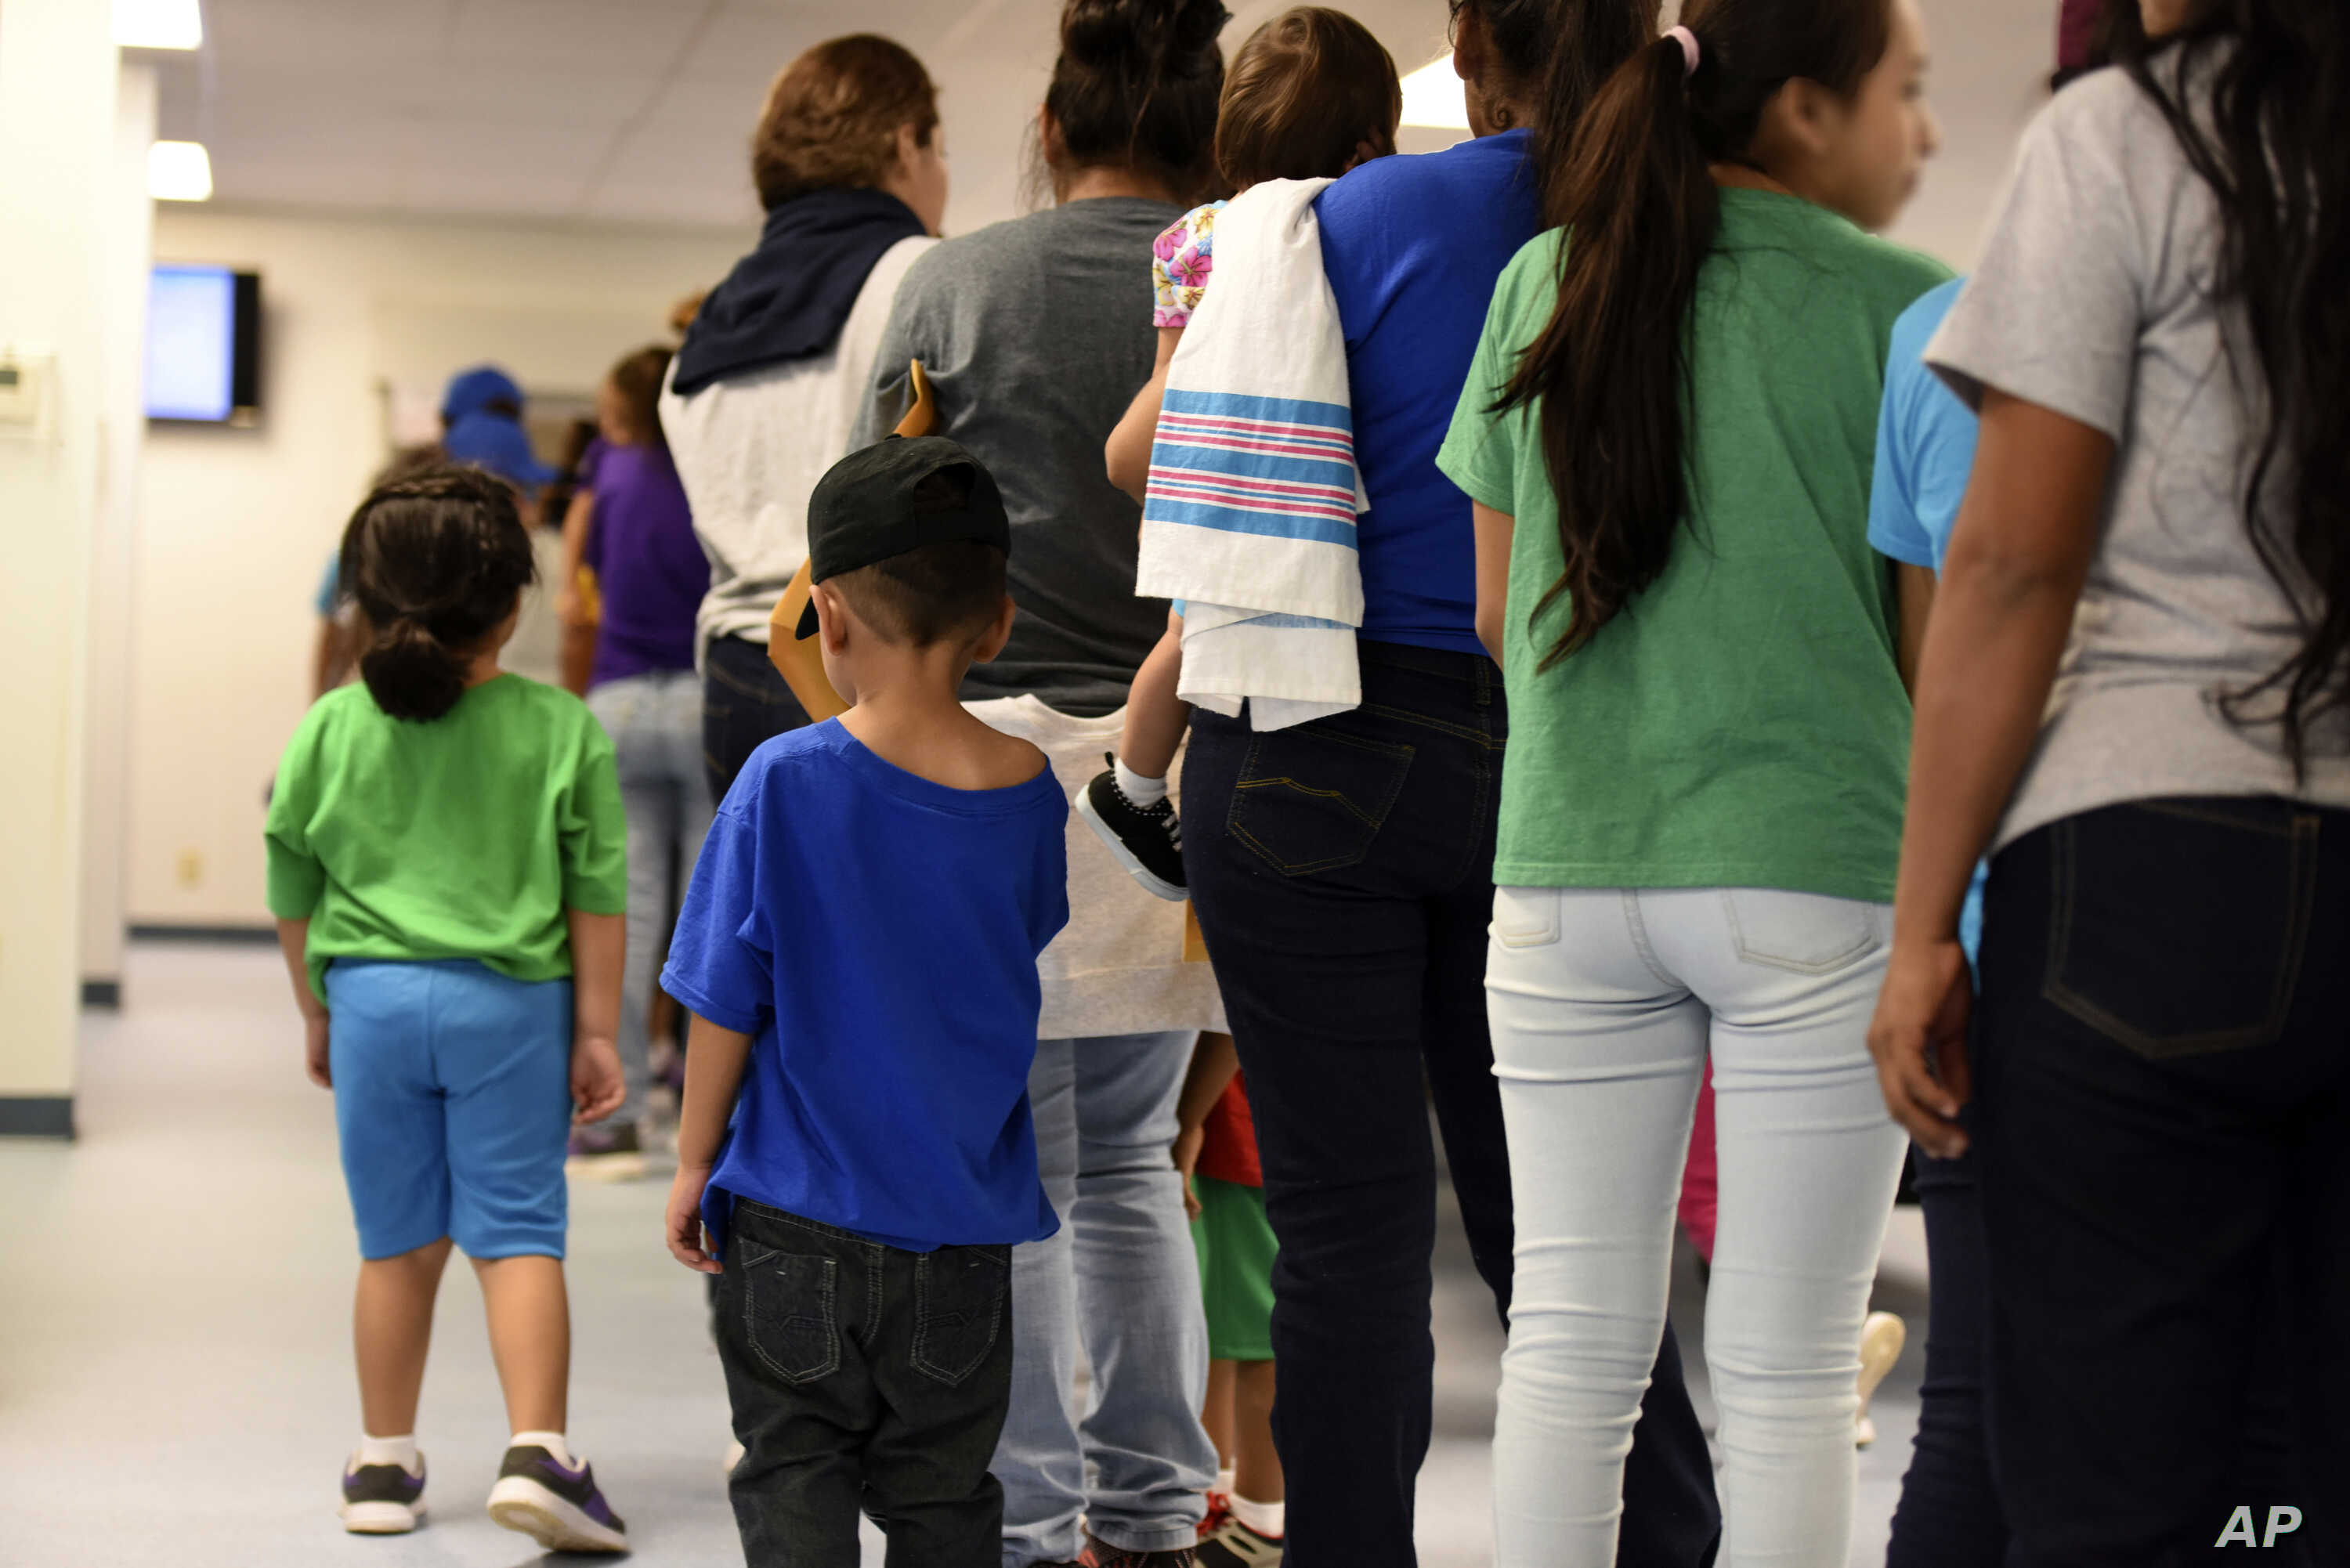 FILE - Mothers and children stand at South Texas Family Residential Center in Dilley, Texas, Aug. 9, 2018. Immigrant advocates are suing the U.S. government for allegedly detaining immigrant children too long and refusing to release them to family.